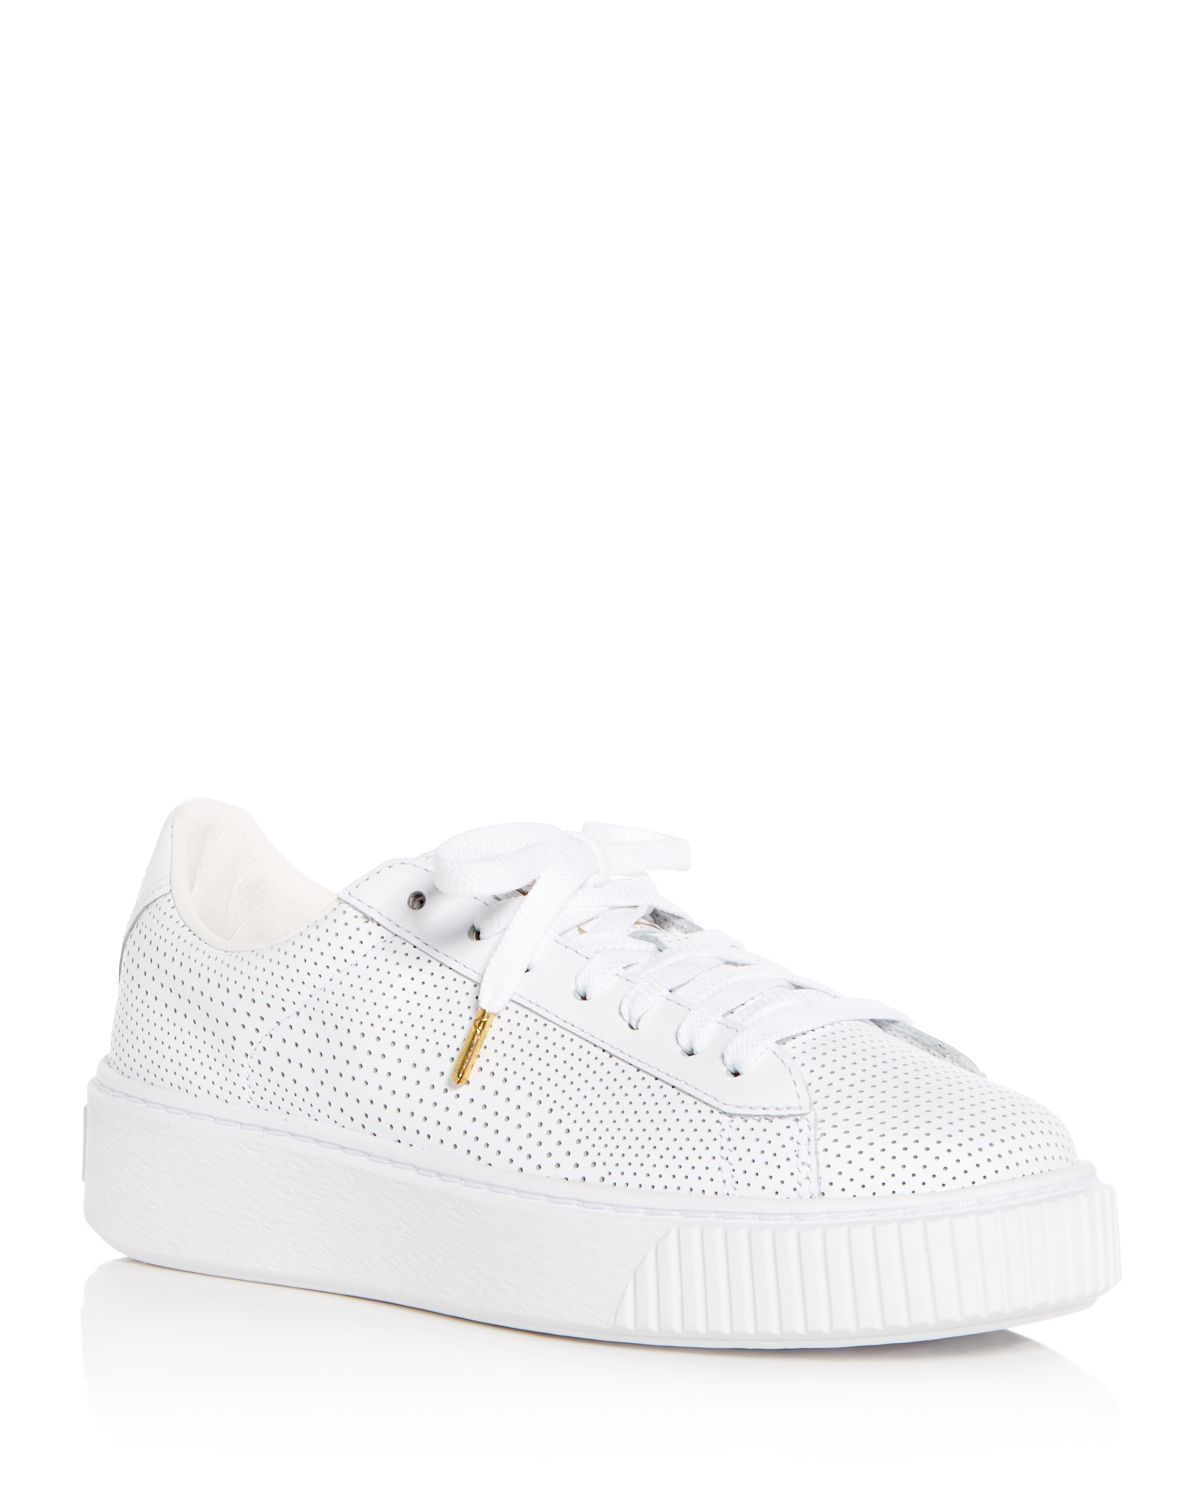 Puma Women's Basket Perforated Leather Lace Up Platform Sneakers